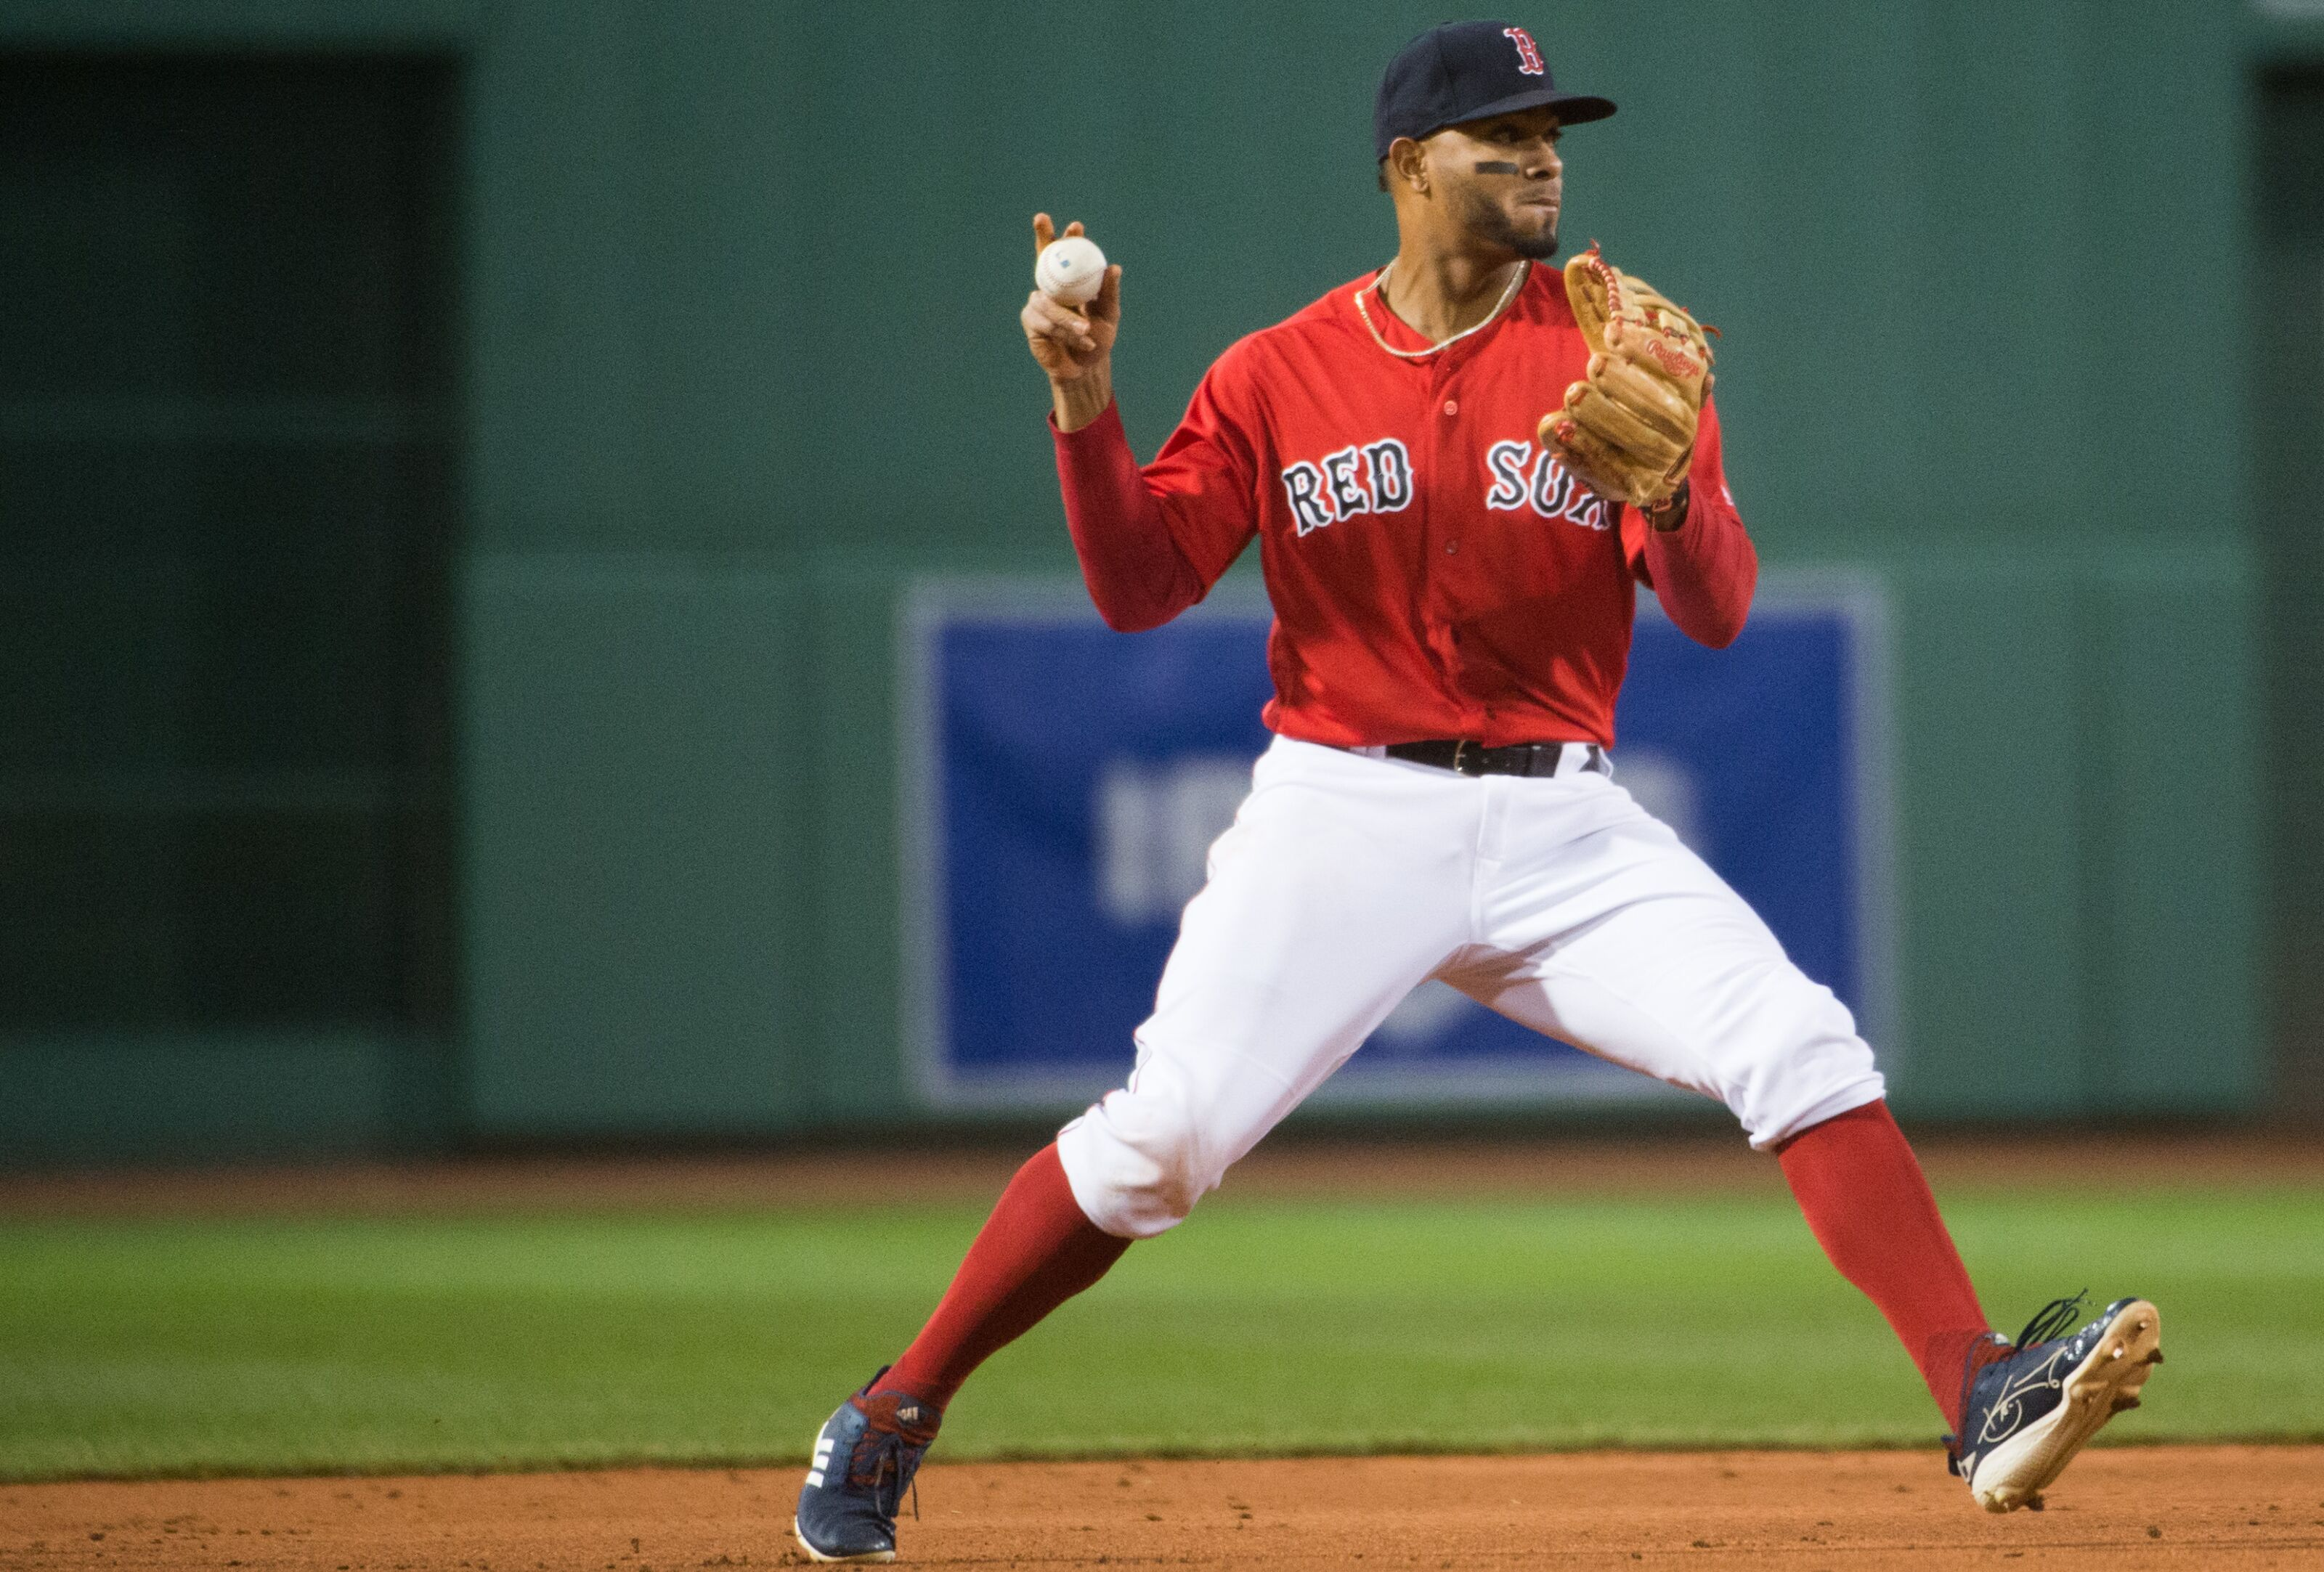 Red Sox 2019 Report Cards: Shortstop Xander Bogaerts